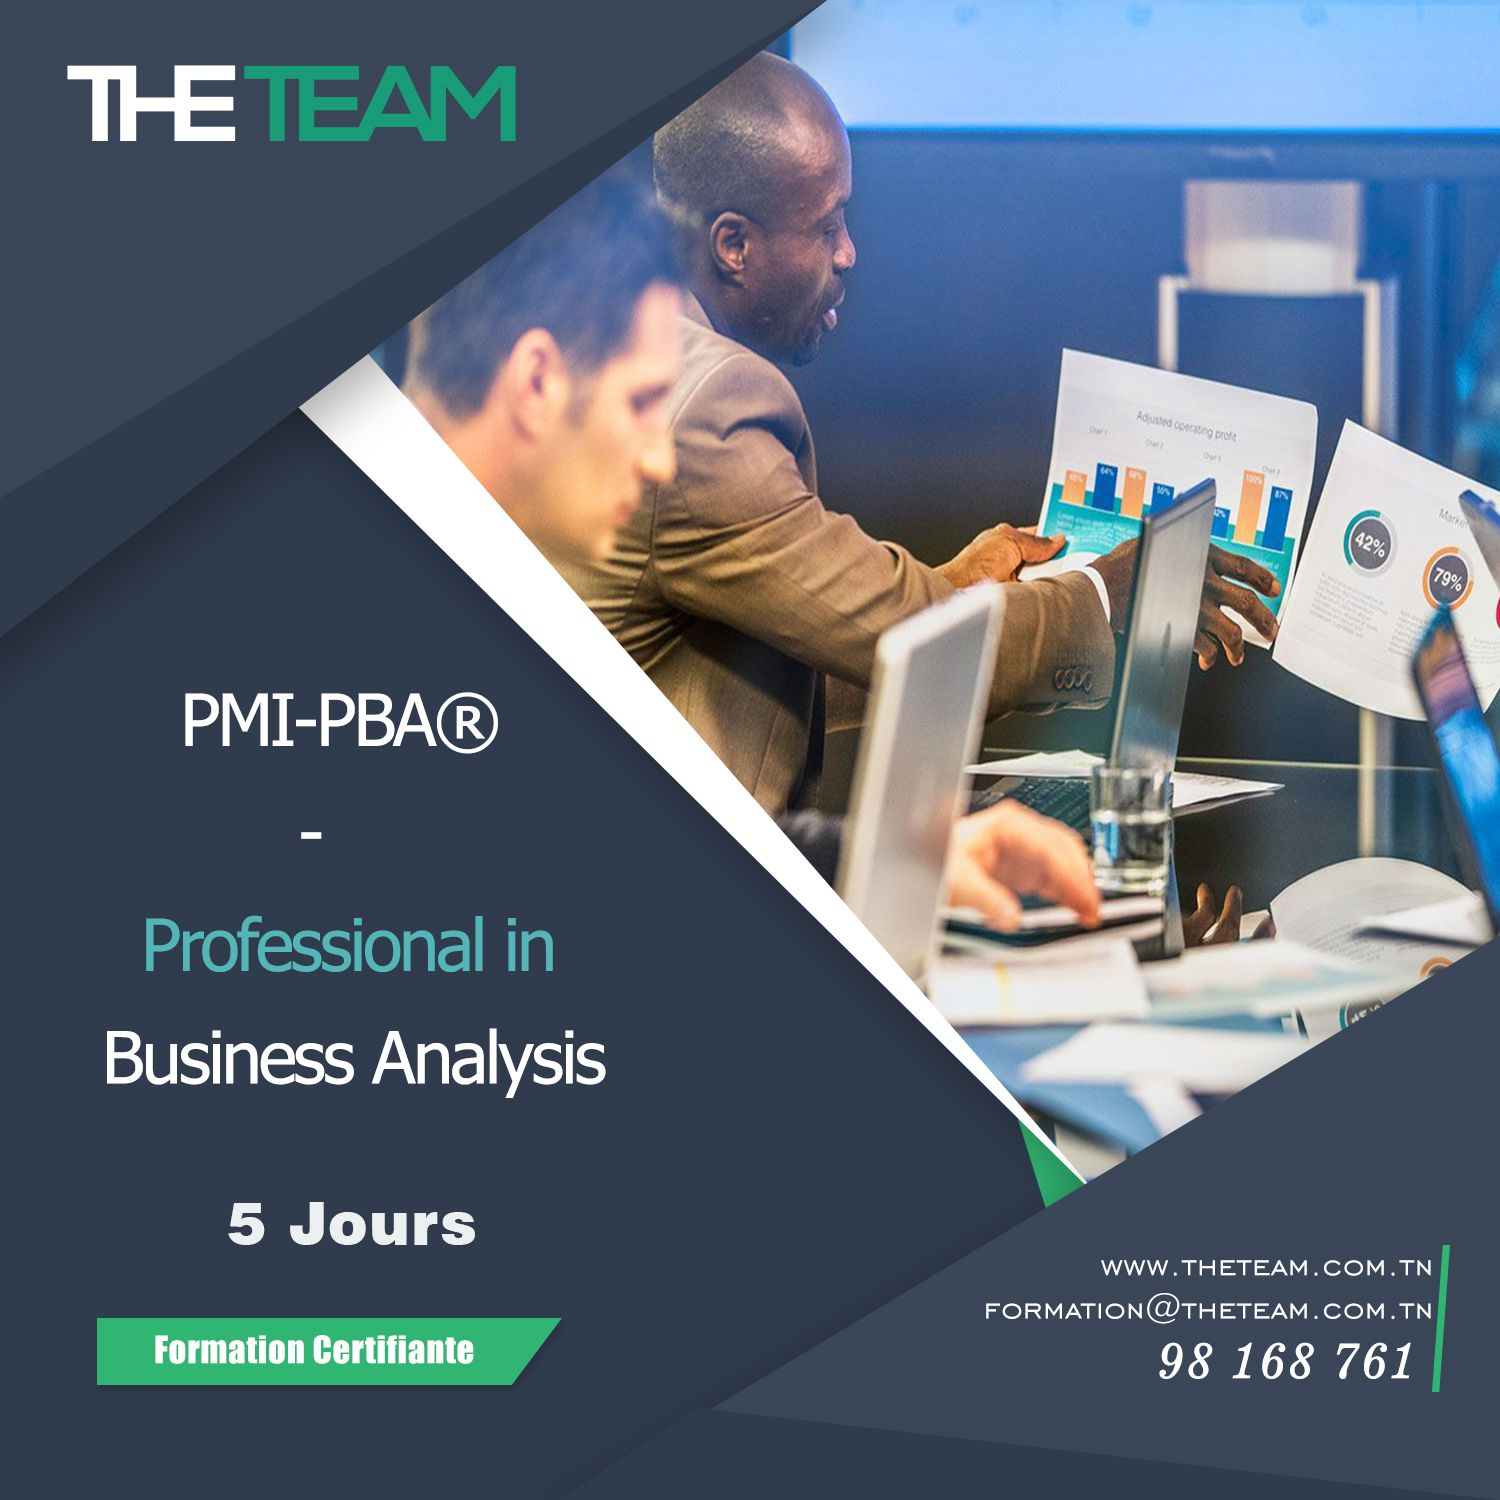 THE TEAM Tunisie PMI PBA - Professional in Business Analysis